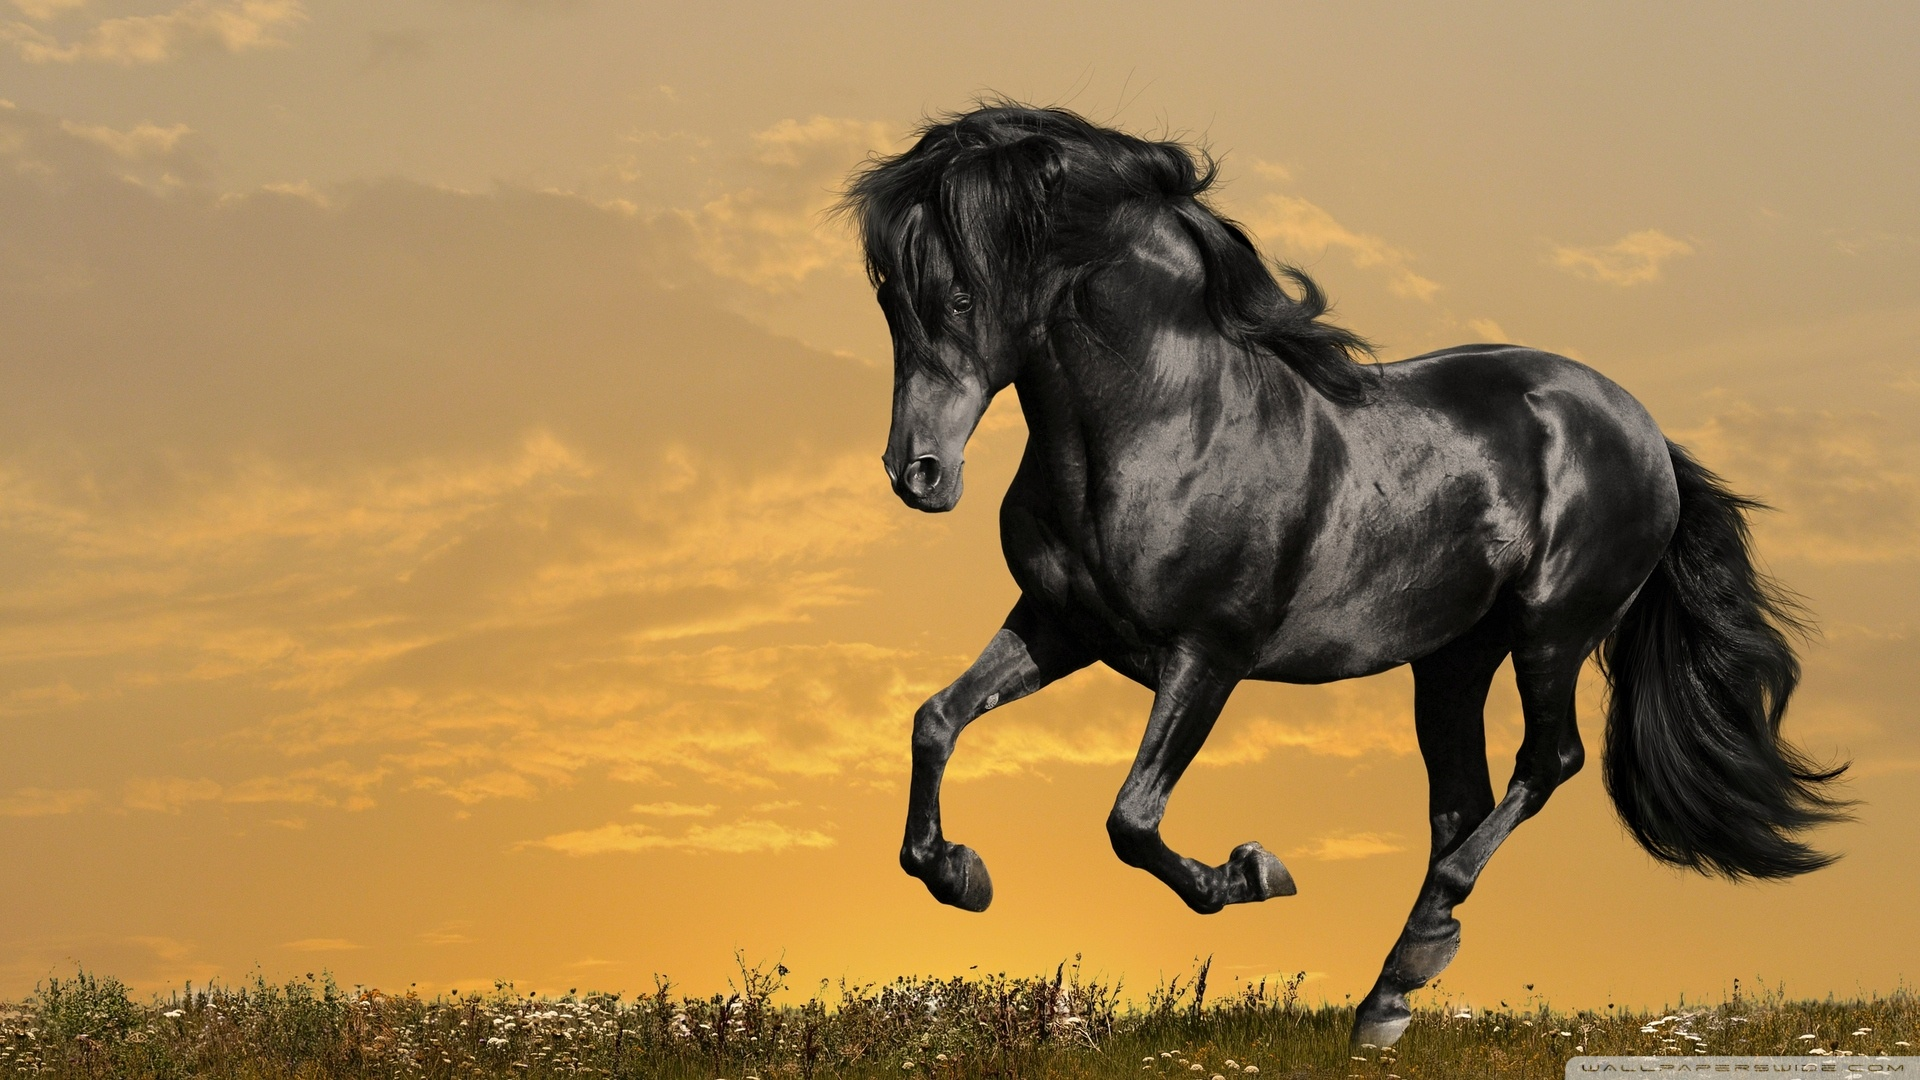 running black horse hd wallpapers cool desktop background images widescreen